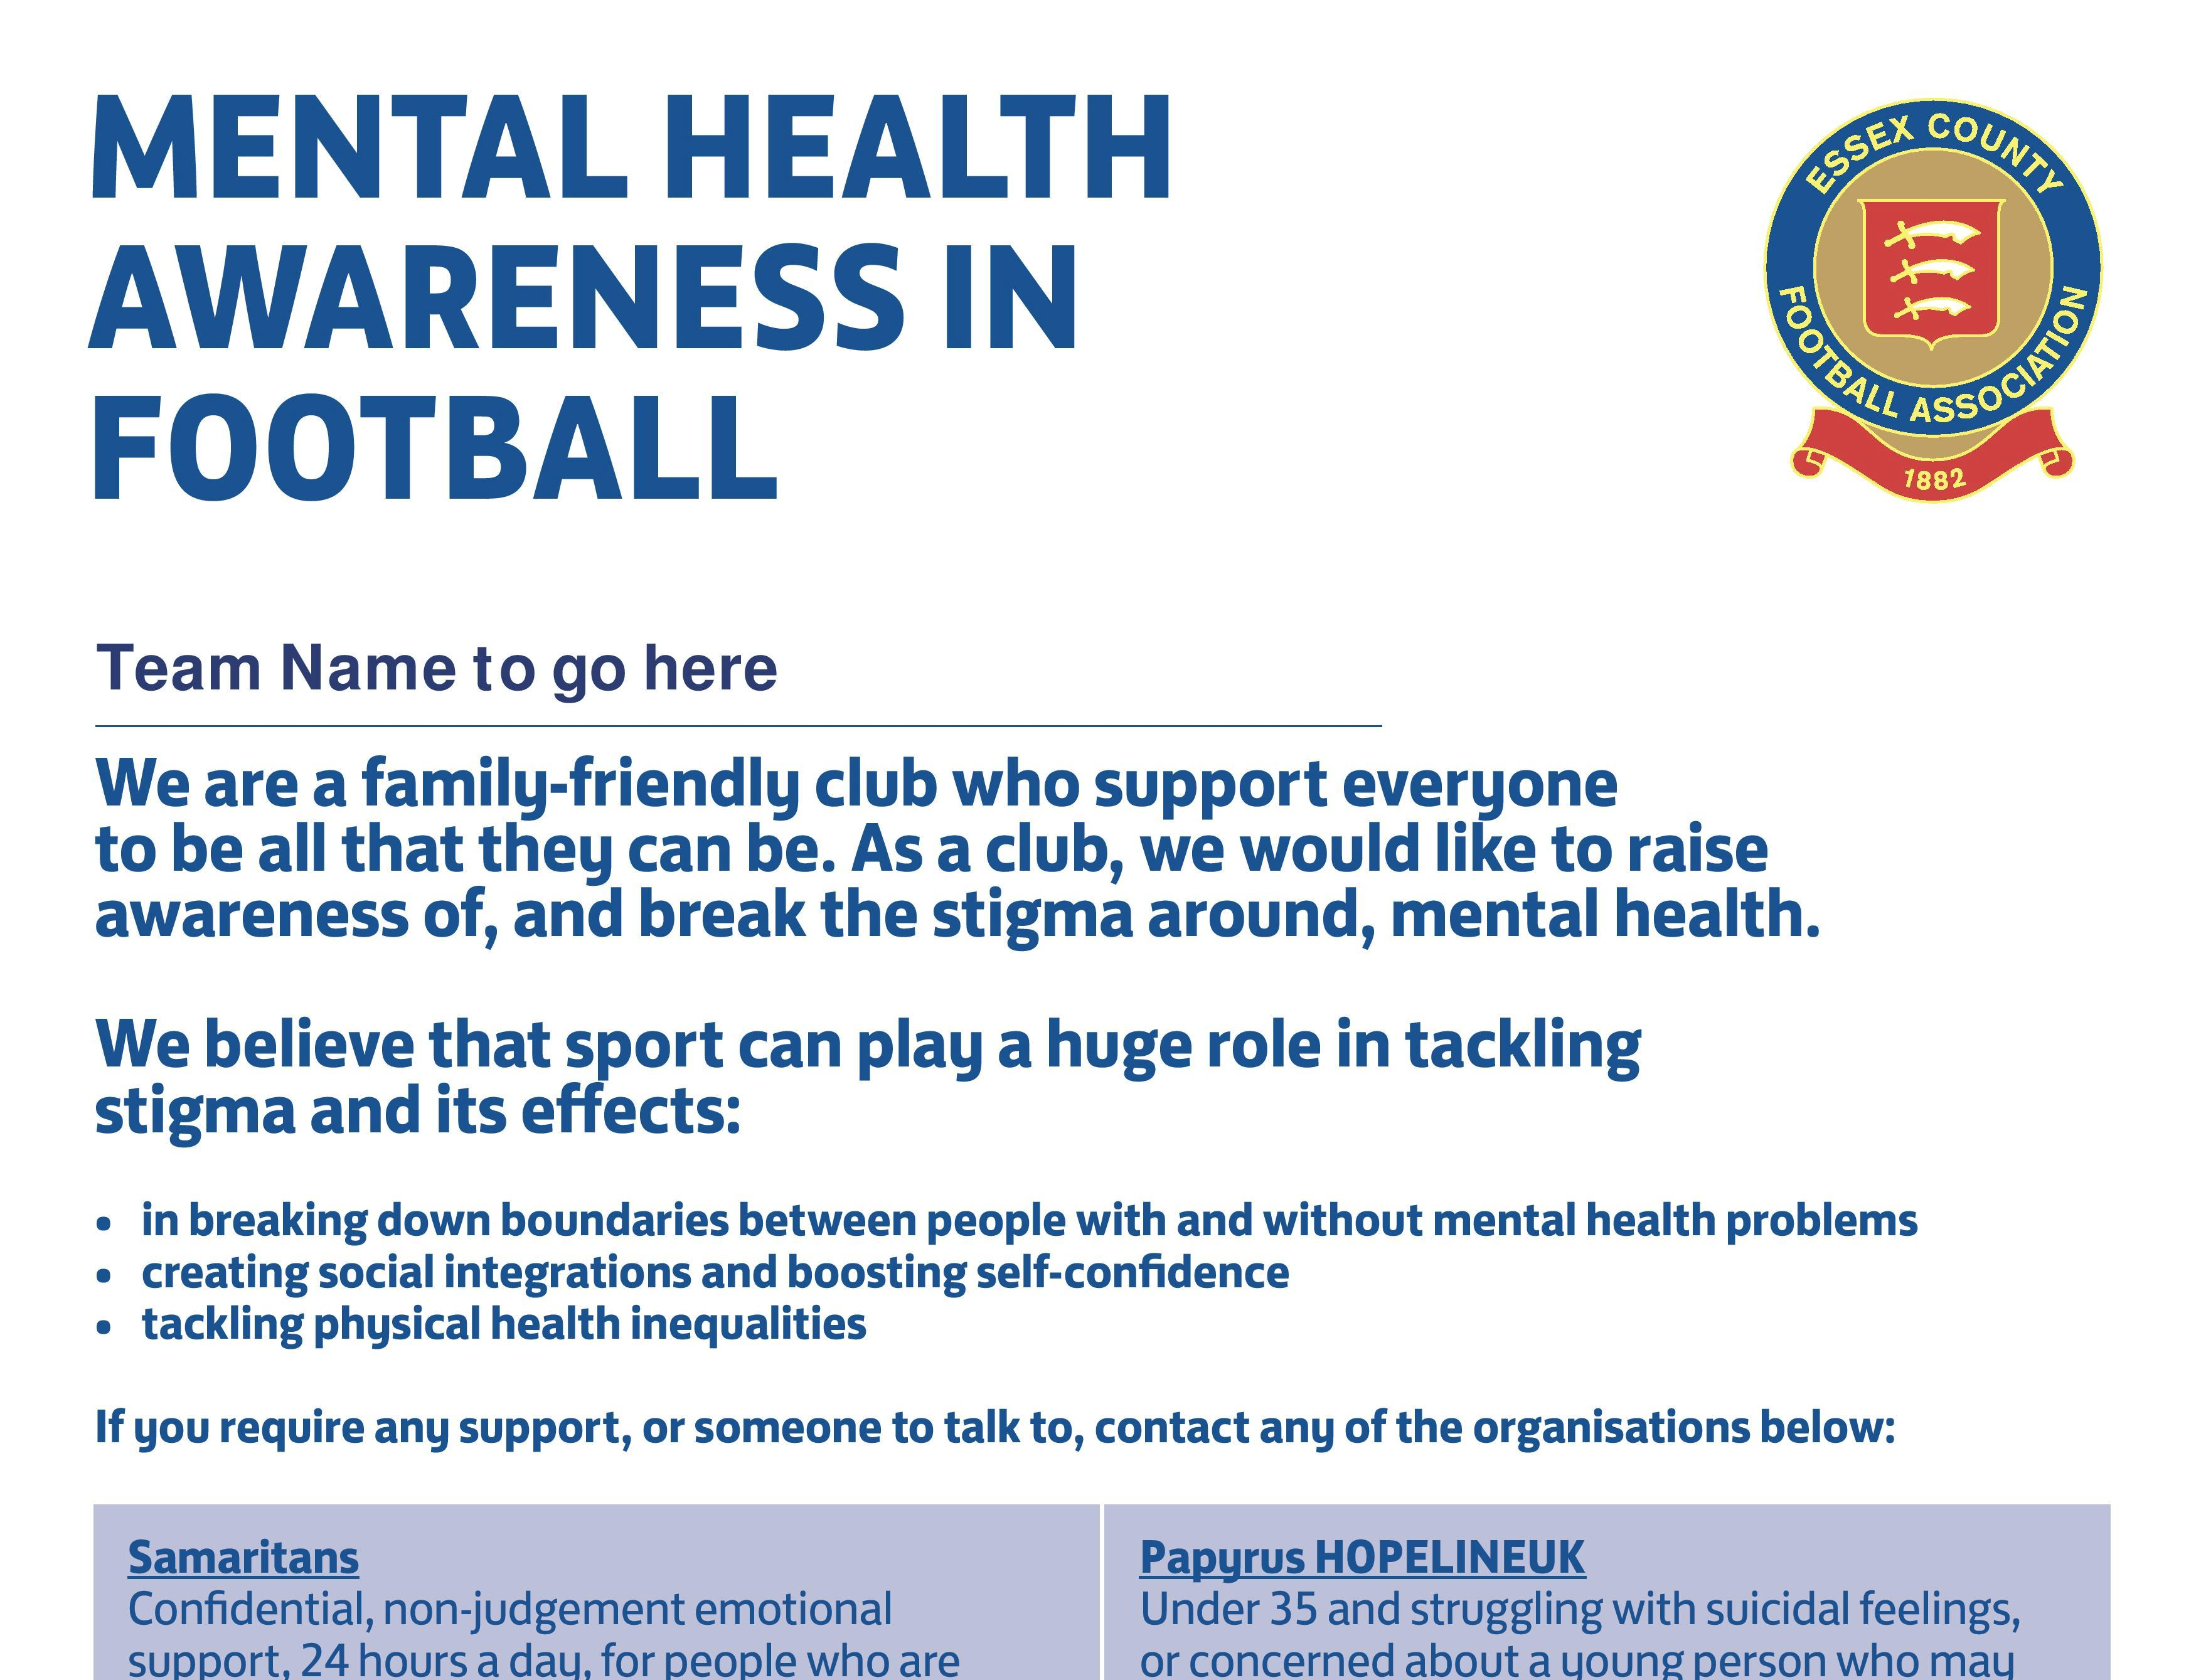 Mental Health Awareness in Football